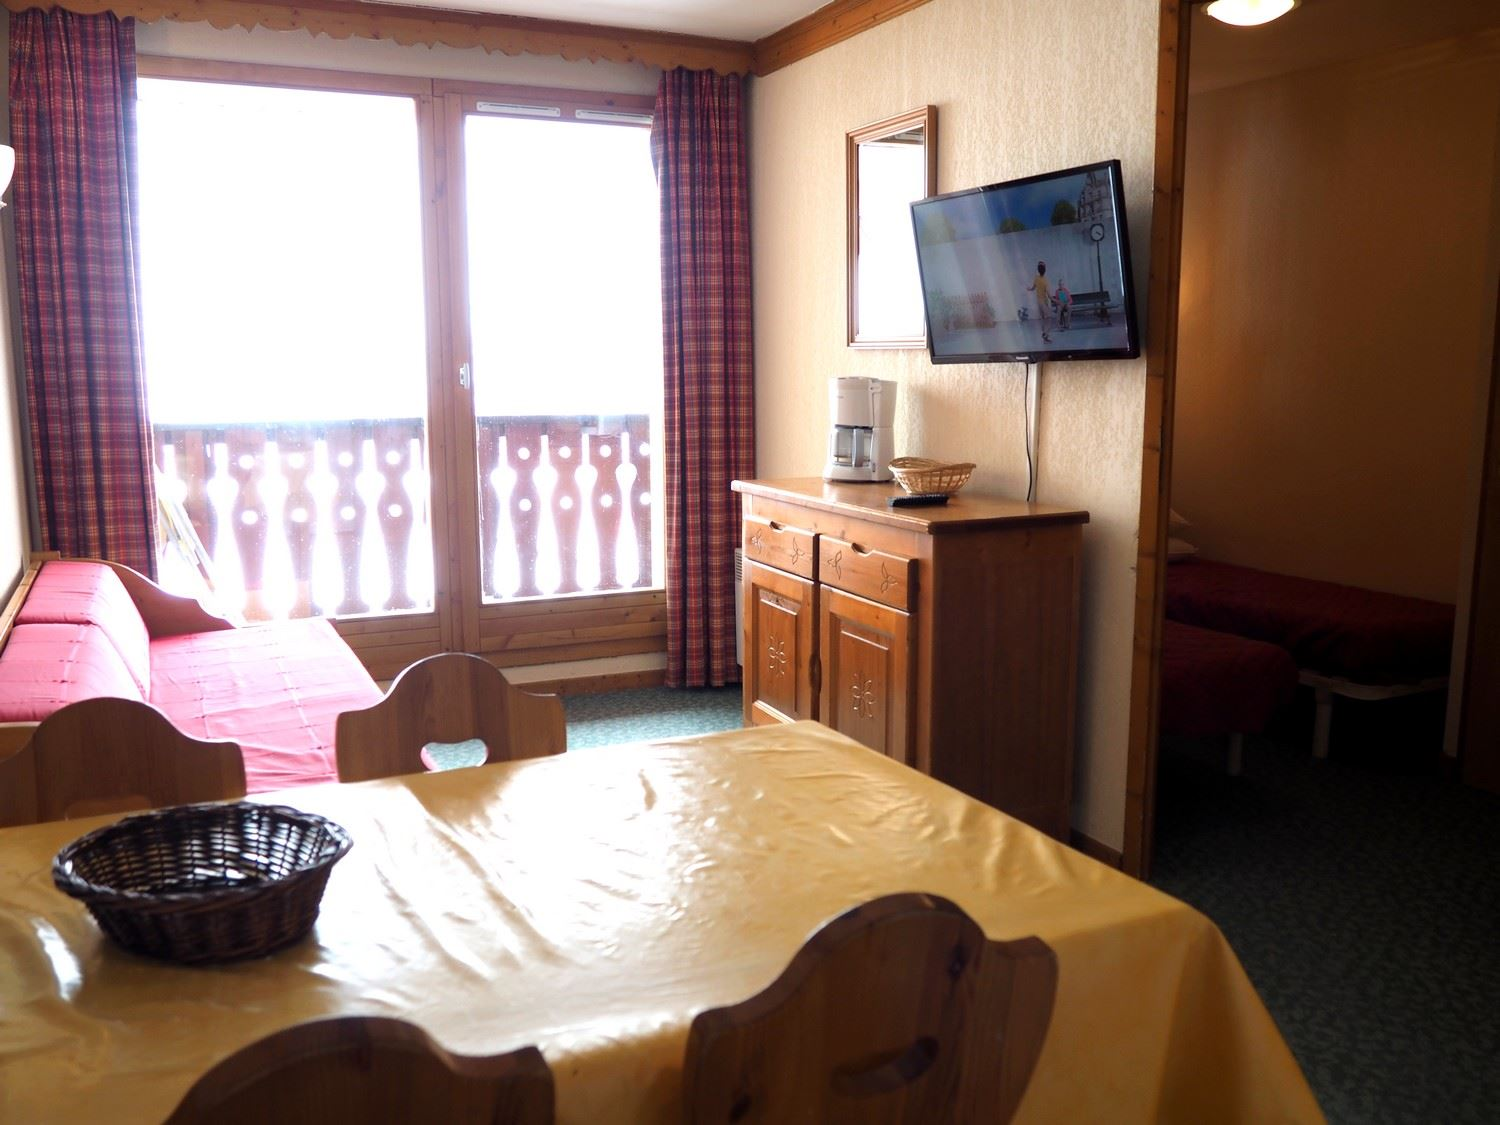 2 Rooms 4 Pers ski-in ski-out / VALMONTS 406